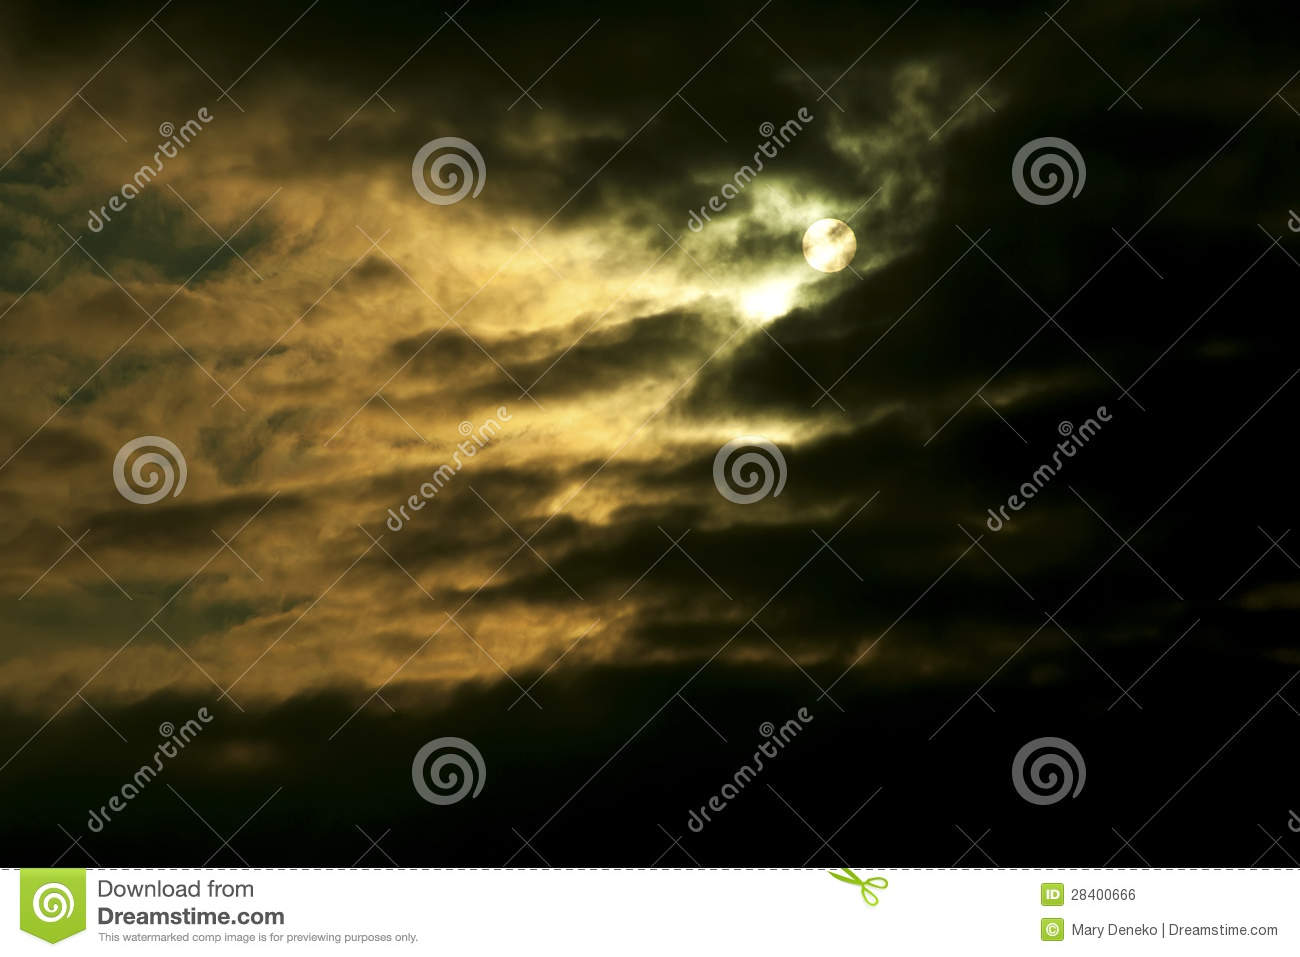 Storm Clouds and moon